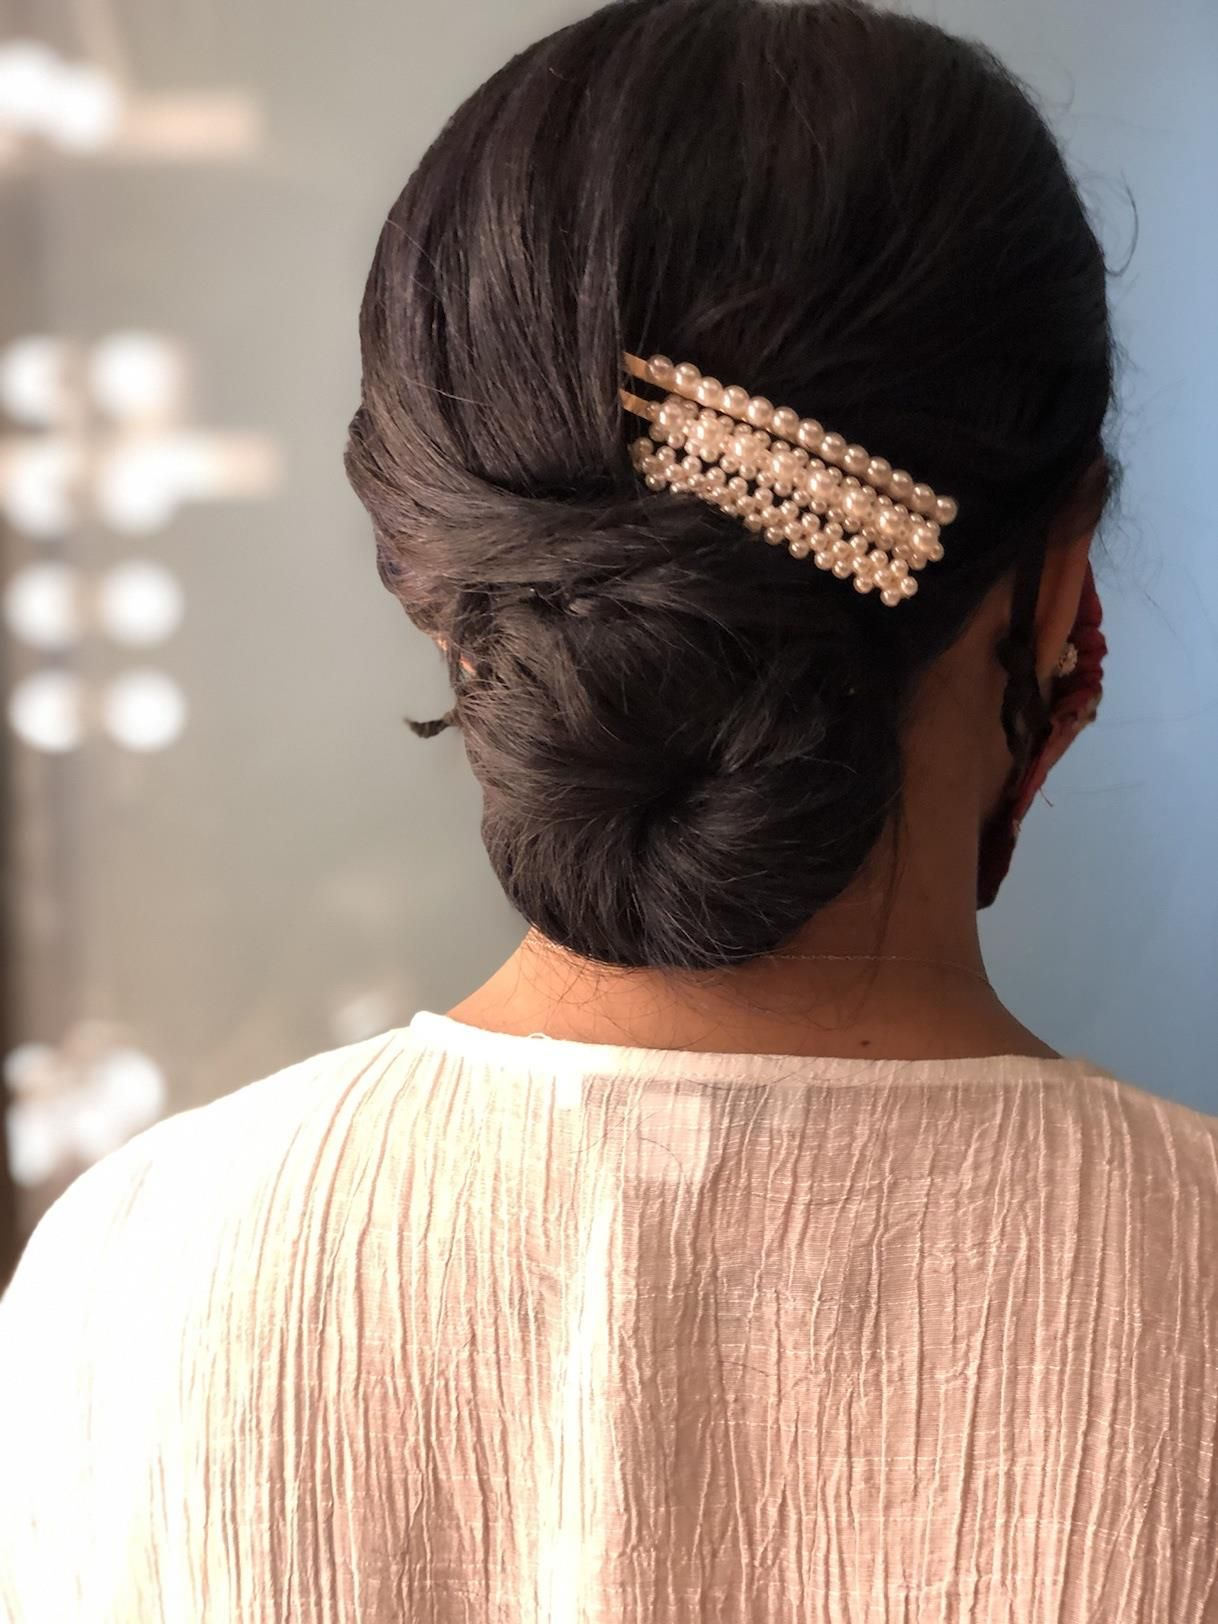 Special Occasion Styling 65 In 2020 Special Occasion Hairstyles Salon Software Hair Styles